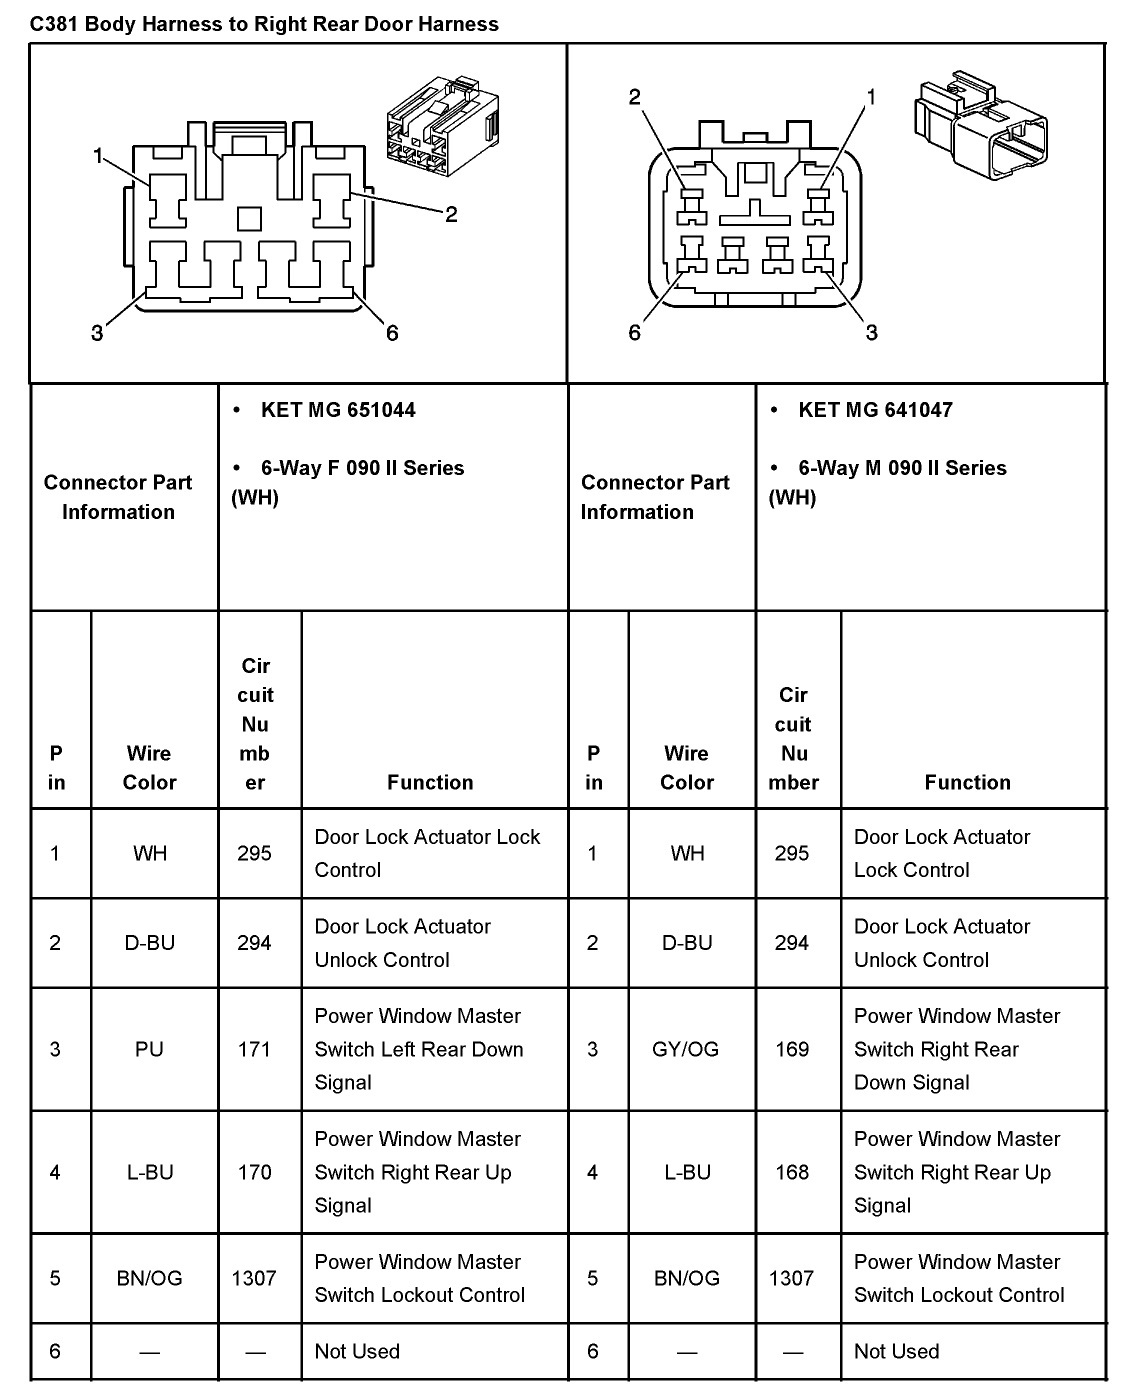 wiring diagram for chevy aveo smart wiring diagrams u2022 rh emgsolutions co 2011 aveo stereo wiring diagram chevrolet aveo 2011 wiring diagram